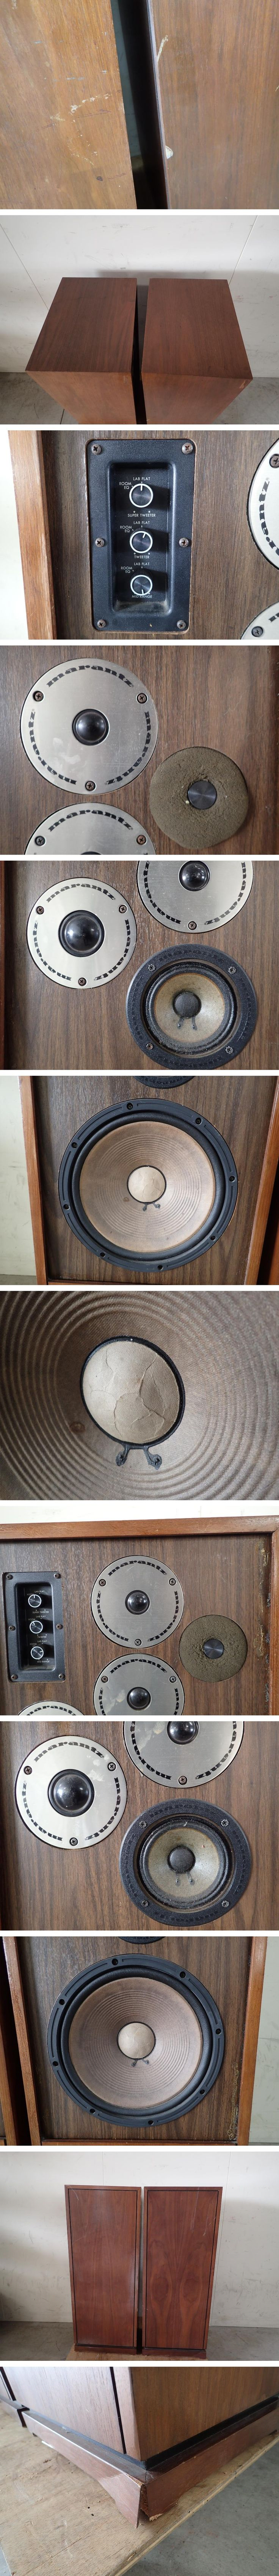 best 25 frequency response ideas on pinterest kawaii things